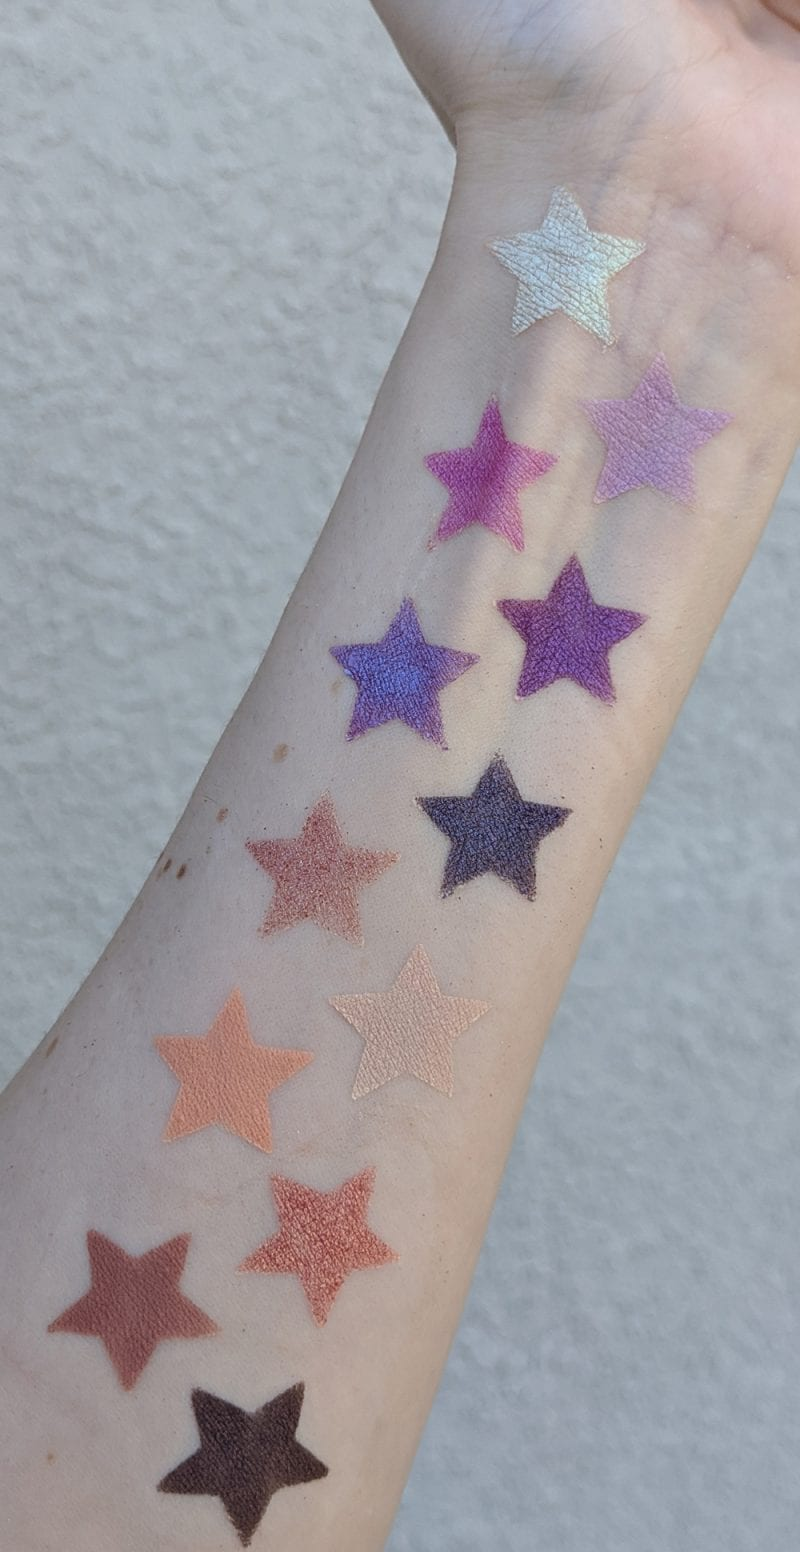 Urban Decay Naked Ultraviolet Palette swatches on fair skin